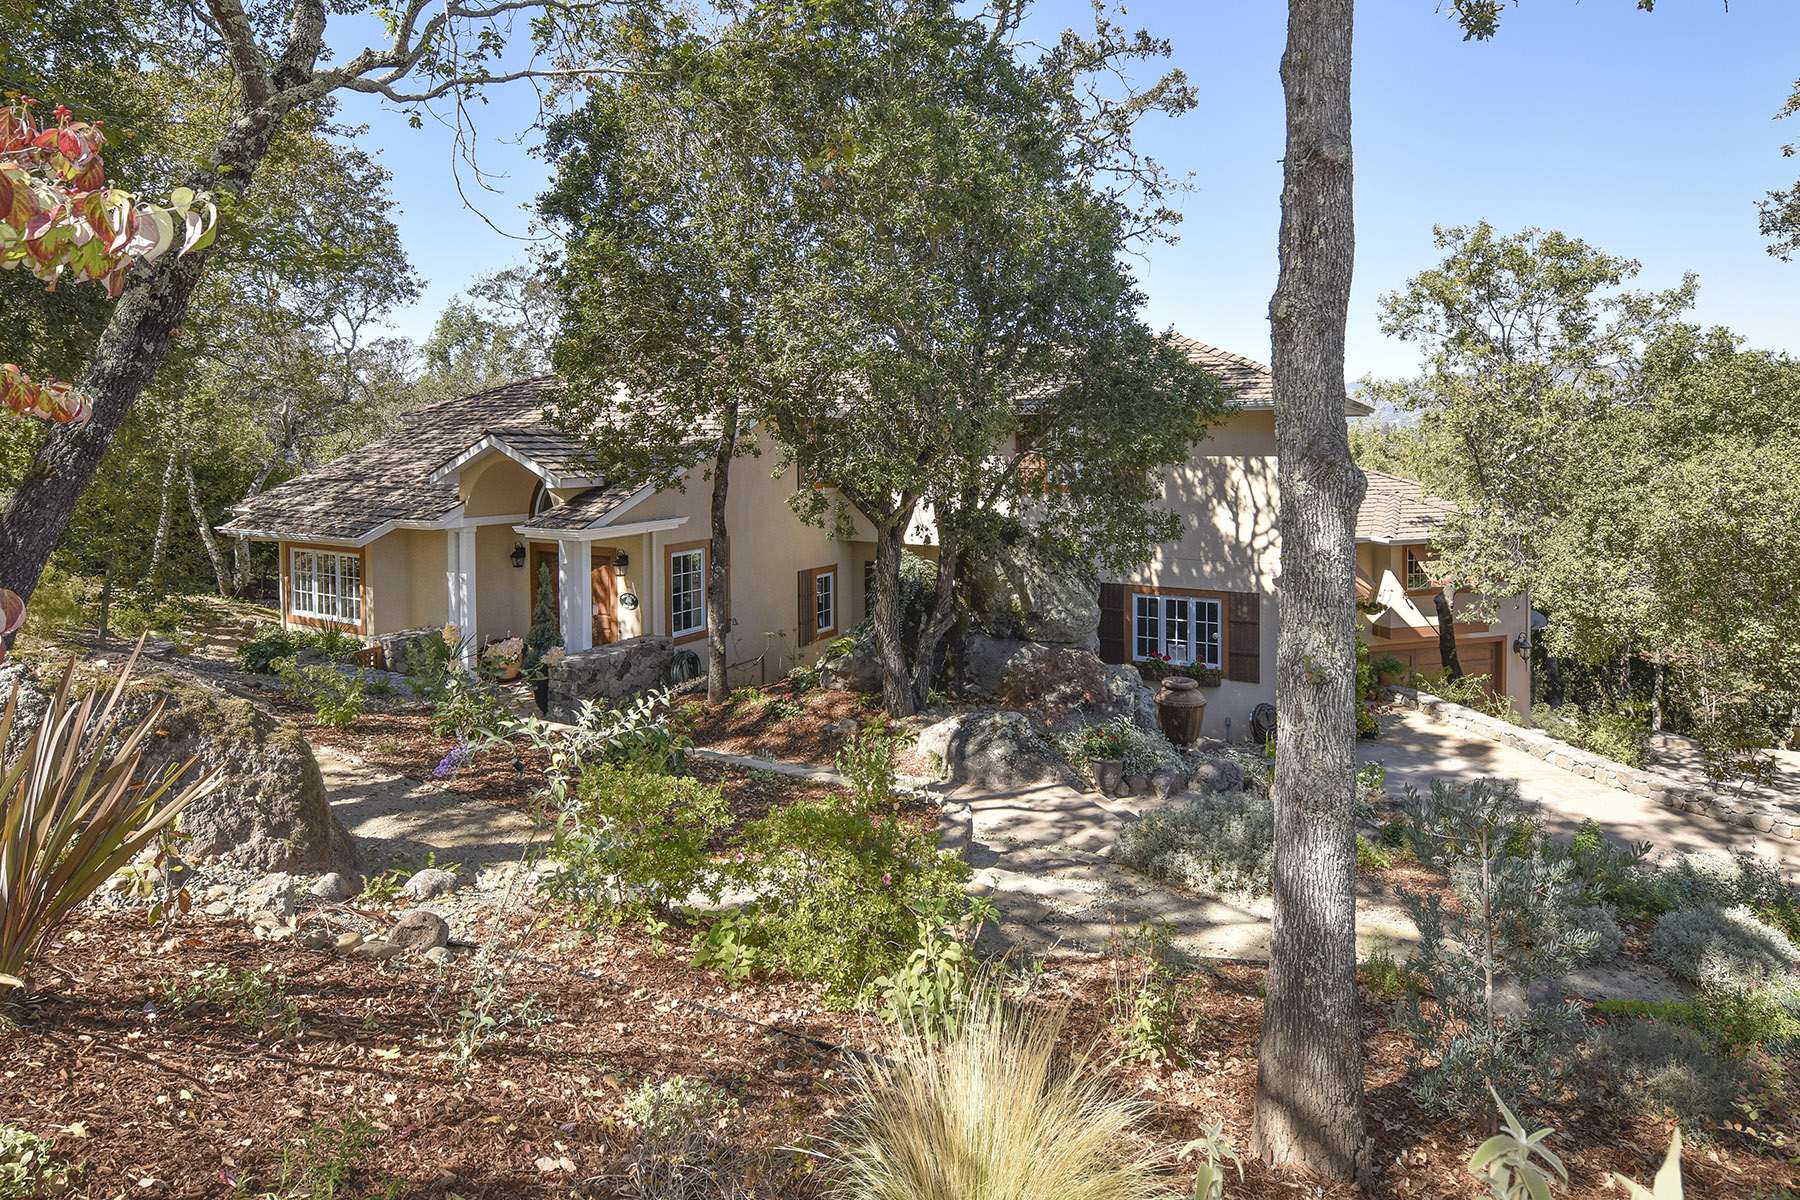 Single Family Home for Sale at An Exclusive Hagen Oaks Estate 5 Old Coach Rd Napa, California 94558 United States